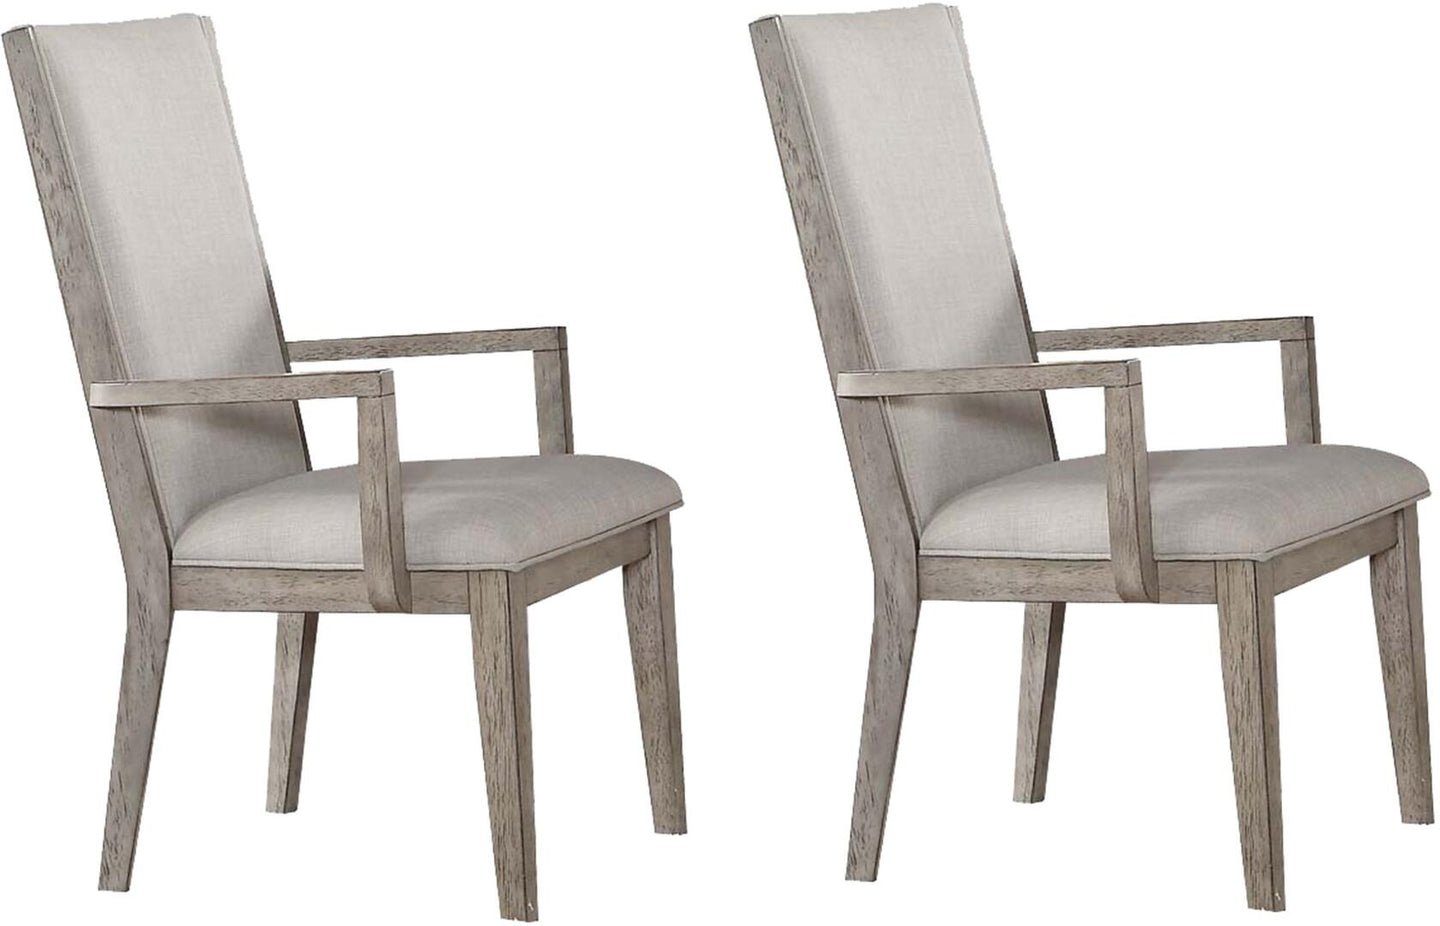 Acme Rocky Gray Oak Wood Finish 2 Piece Dining Arm Chair